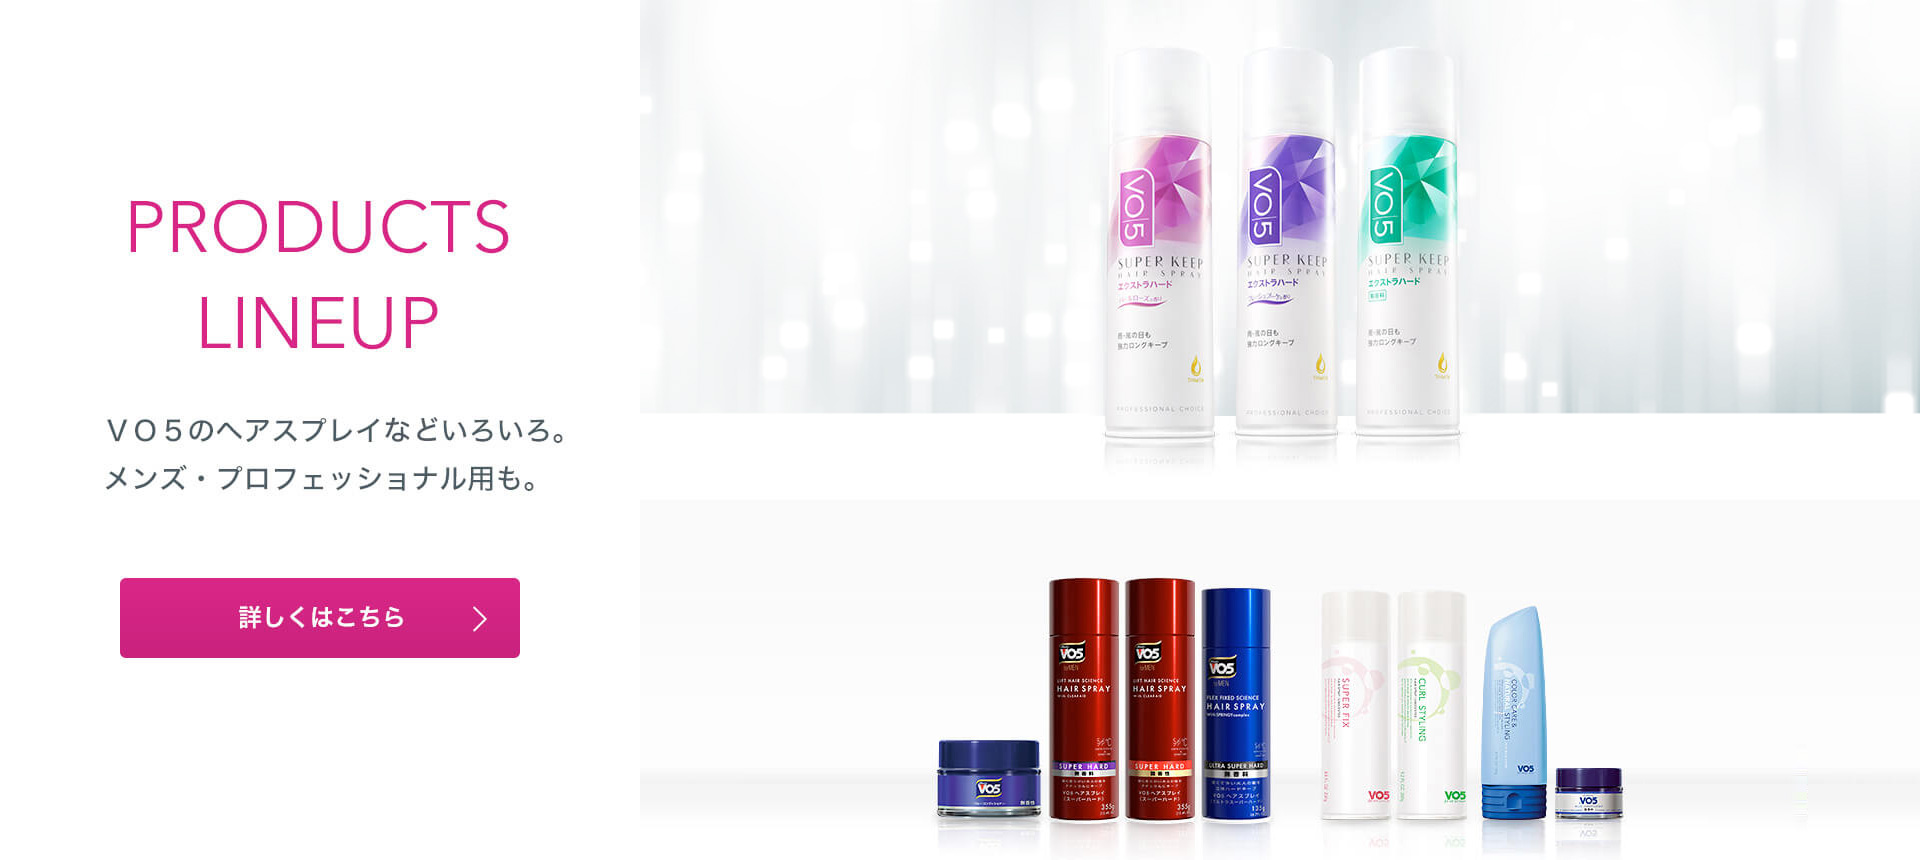 PRODUCTS LINEUP